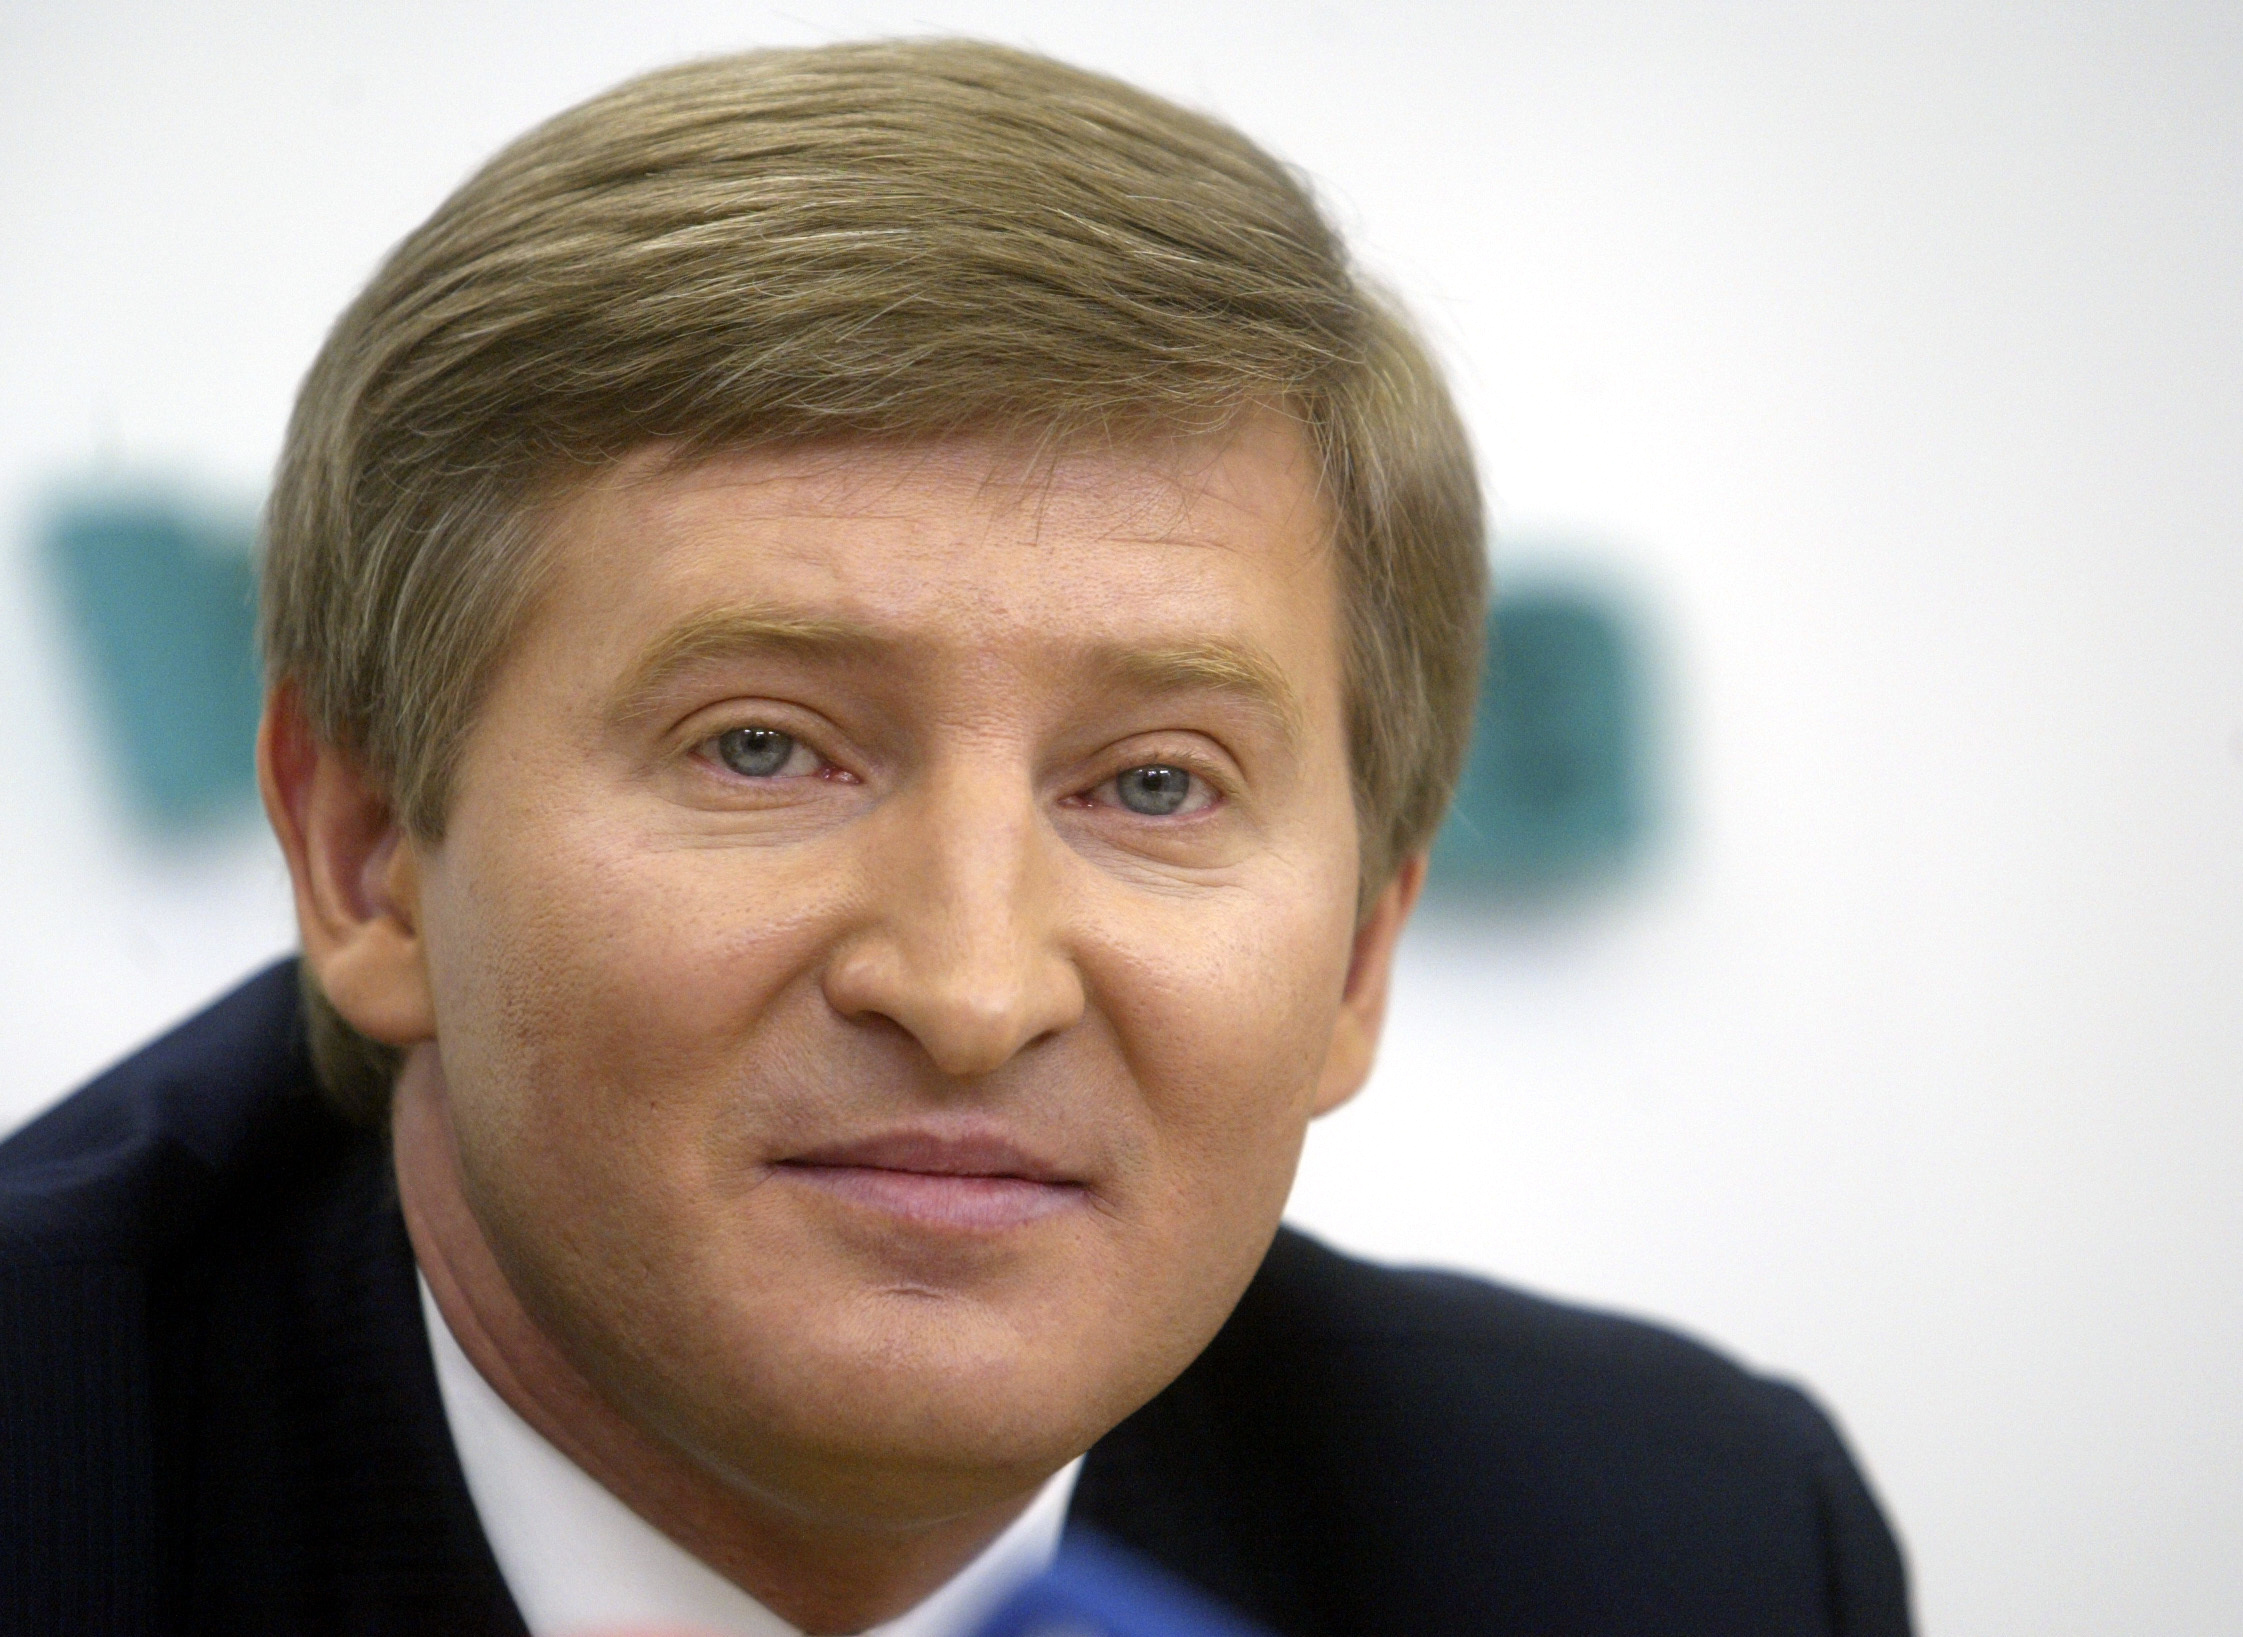 Ukraine-3 FILE - In this March 30, 2006, file photo, Rinat Akhmetov, an eastern Ukrainian steel and coal magnate, speaks to the media in Kiev, Ukraine. The charity foundation run by billionaire Akhmetov said in a statement on Wednesday, March 1, 2017, that its work in the region has been paralyzed after rebels blocked access to Akhmetov's Shakhtar FC arena in the rebel capital Donetsk, which hosted the 2012 European football championships and now serves as a warehouse for the relief effort. (AP Photo/Efrem Lukatsky, File)